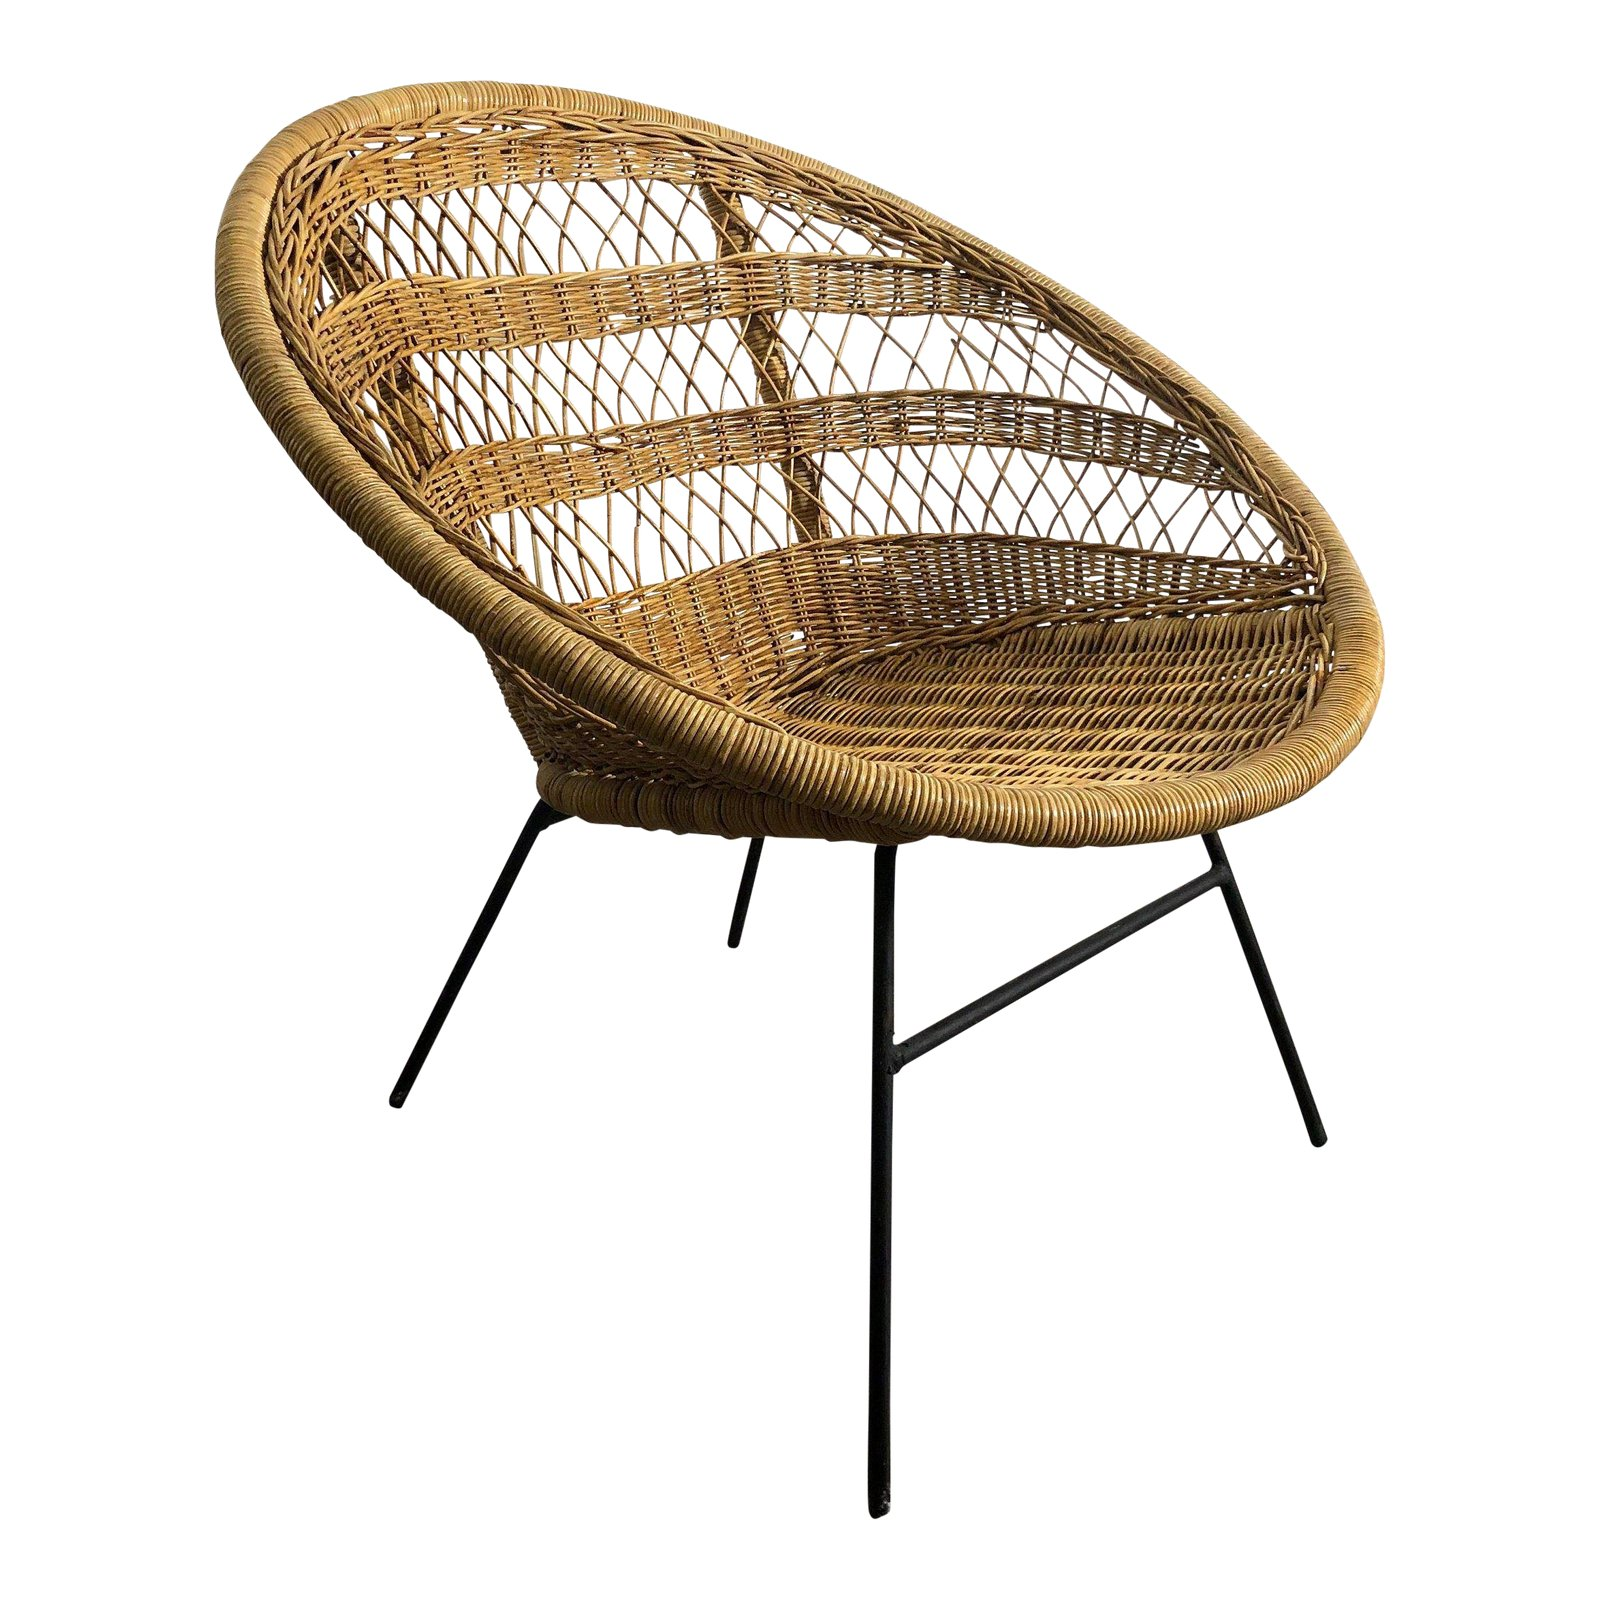 vintage-wicker-and-iron-hoop-lounge-chair-circa-1950s-0168.jpeg